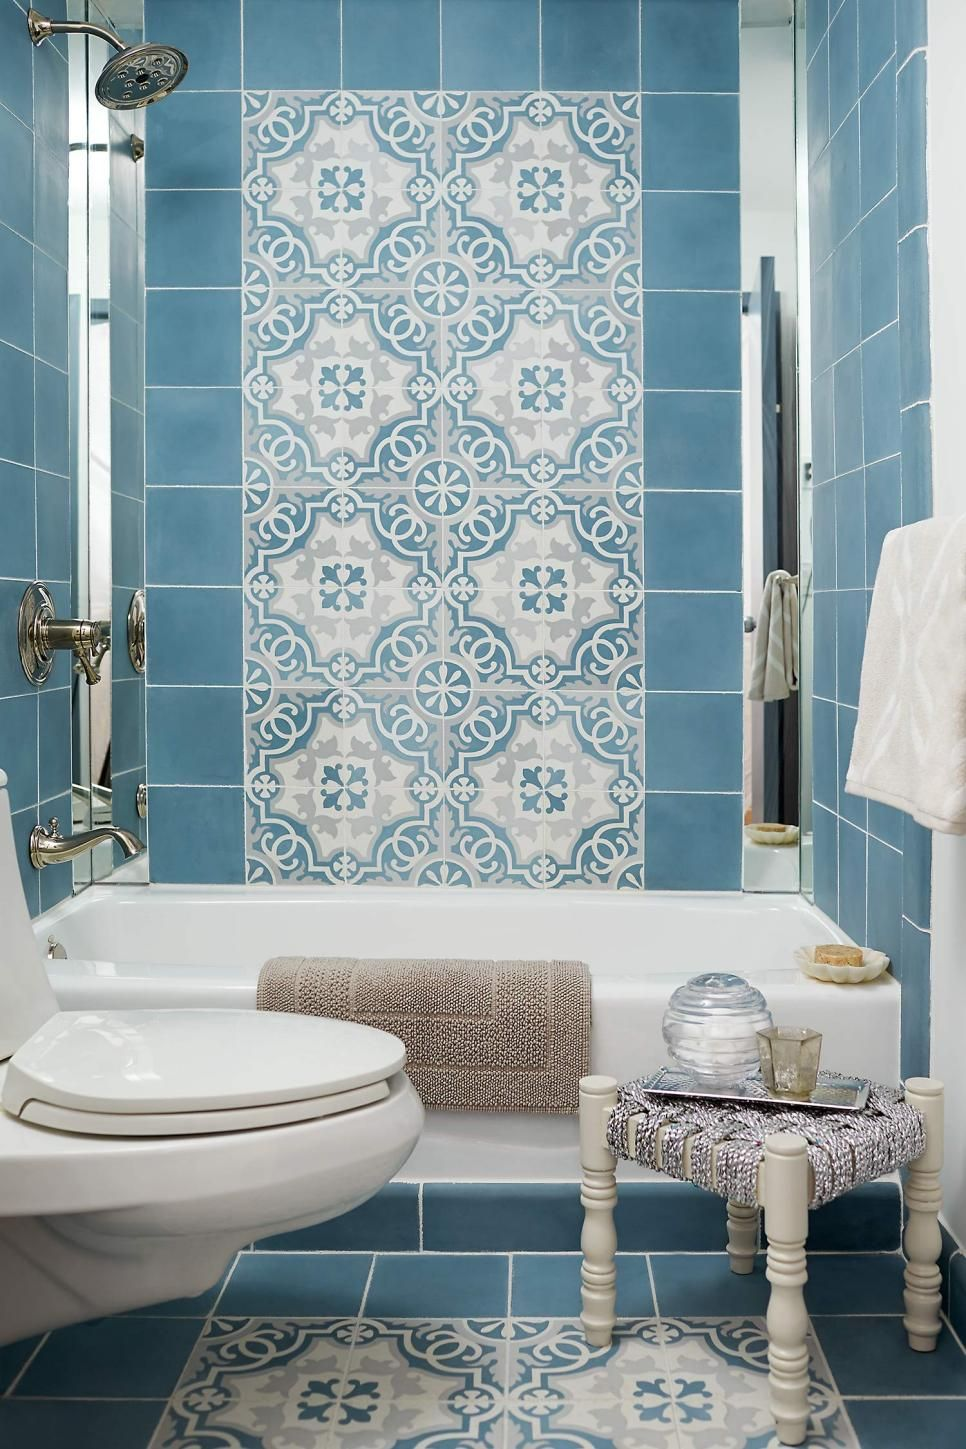 20 Hot Hues For Bathrooms